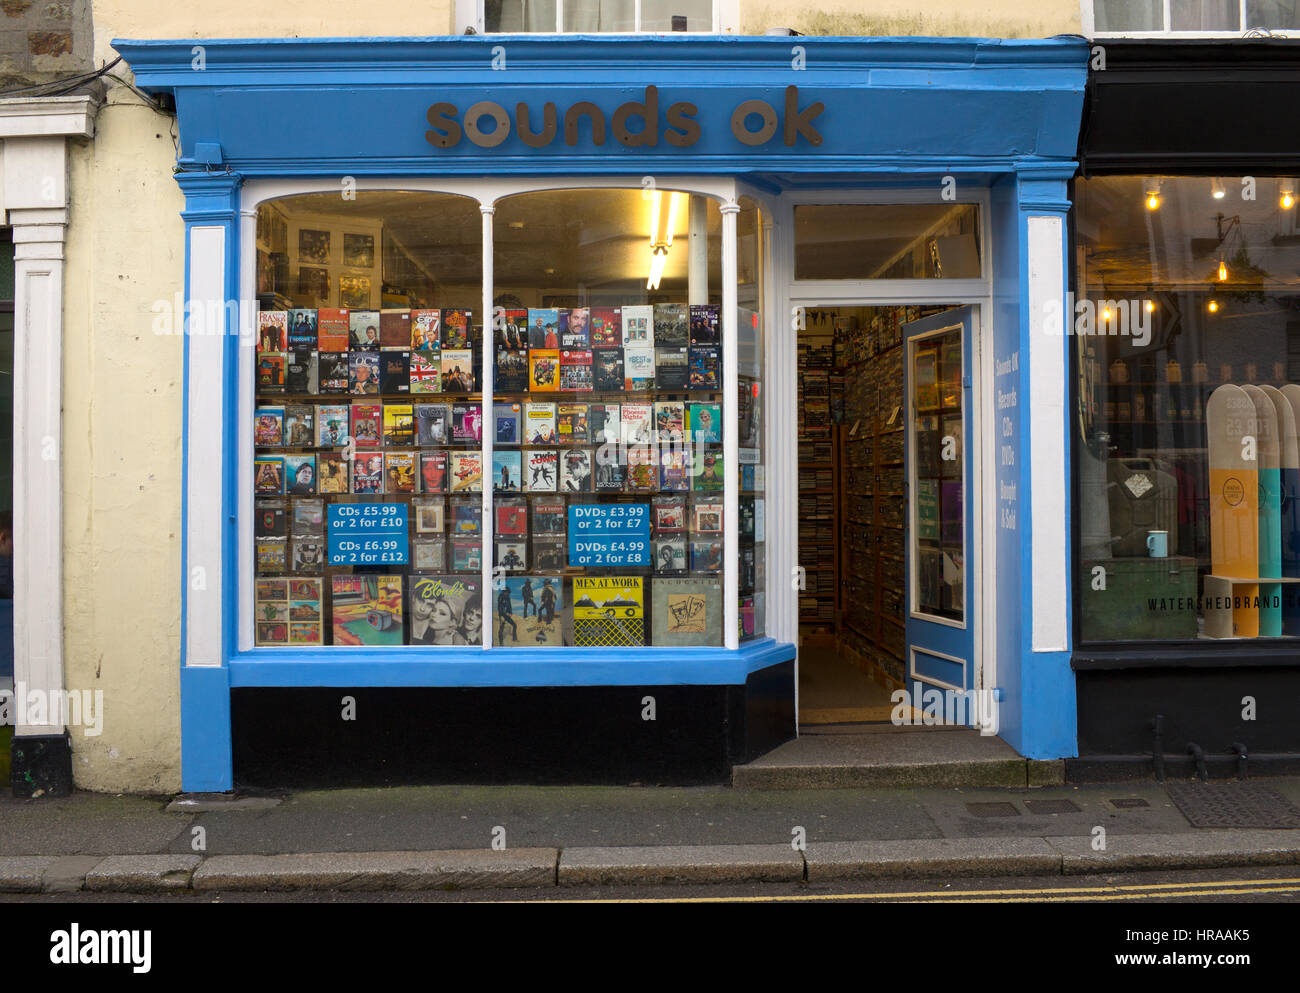 Sounds OK record and DVD shop in Falmouth, Cornwall England UK - Stock Image